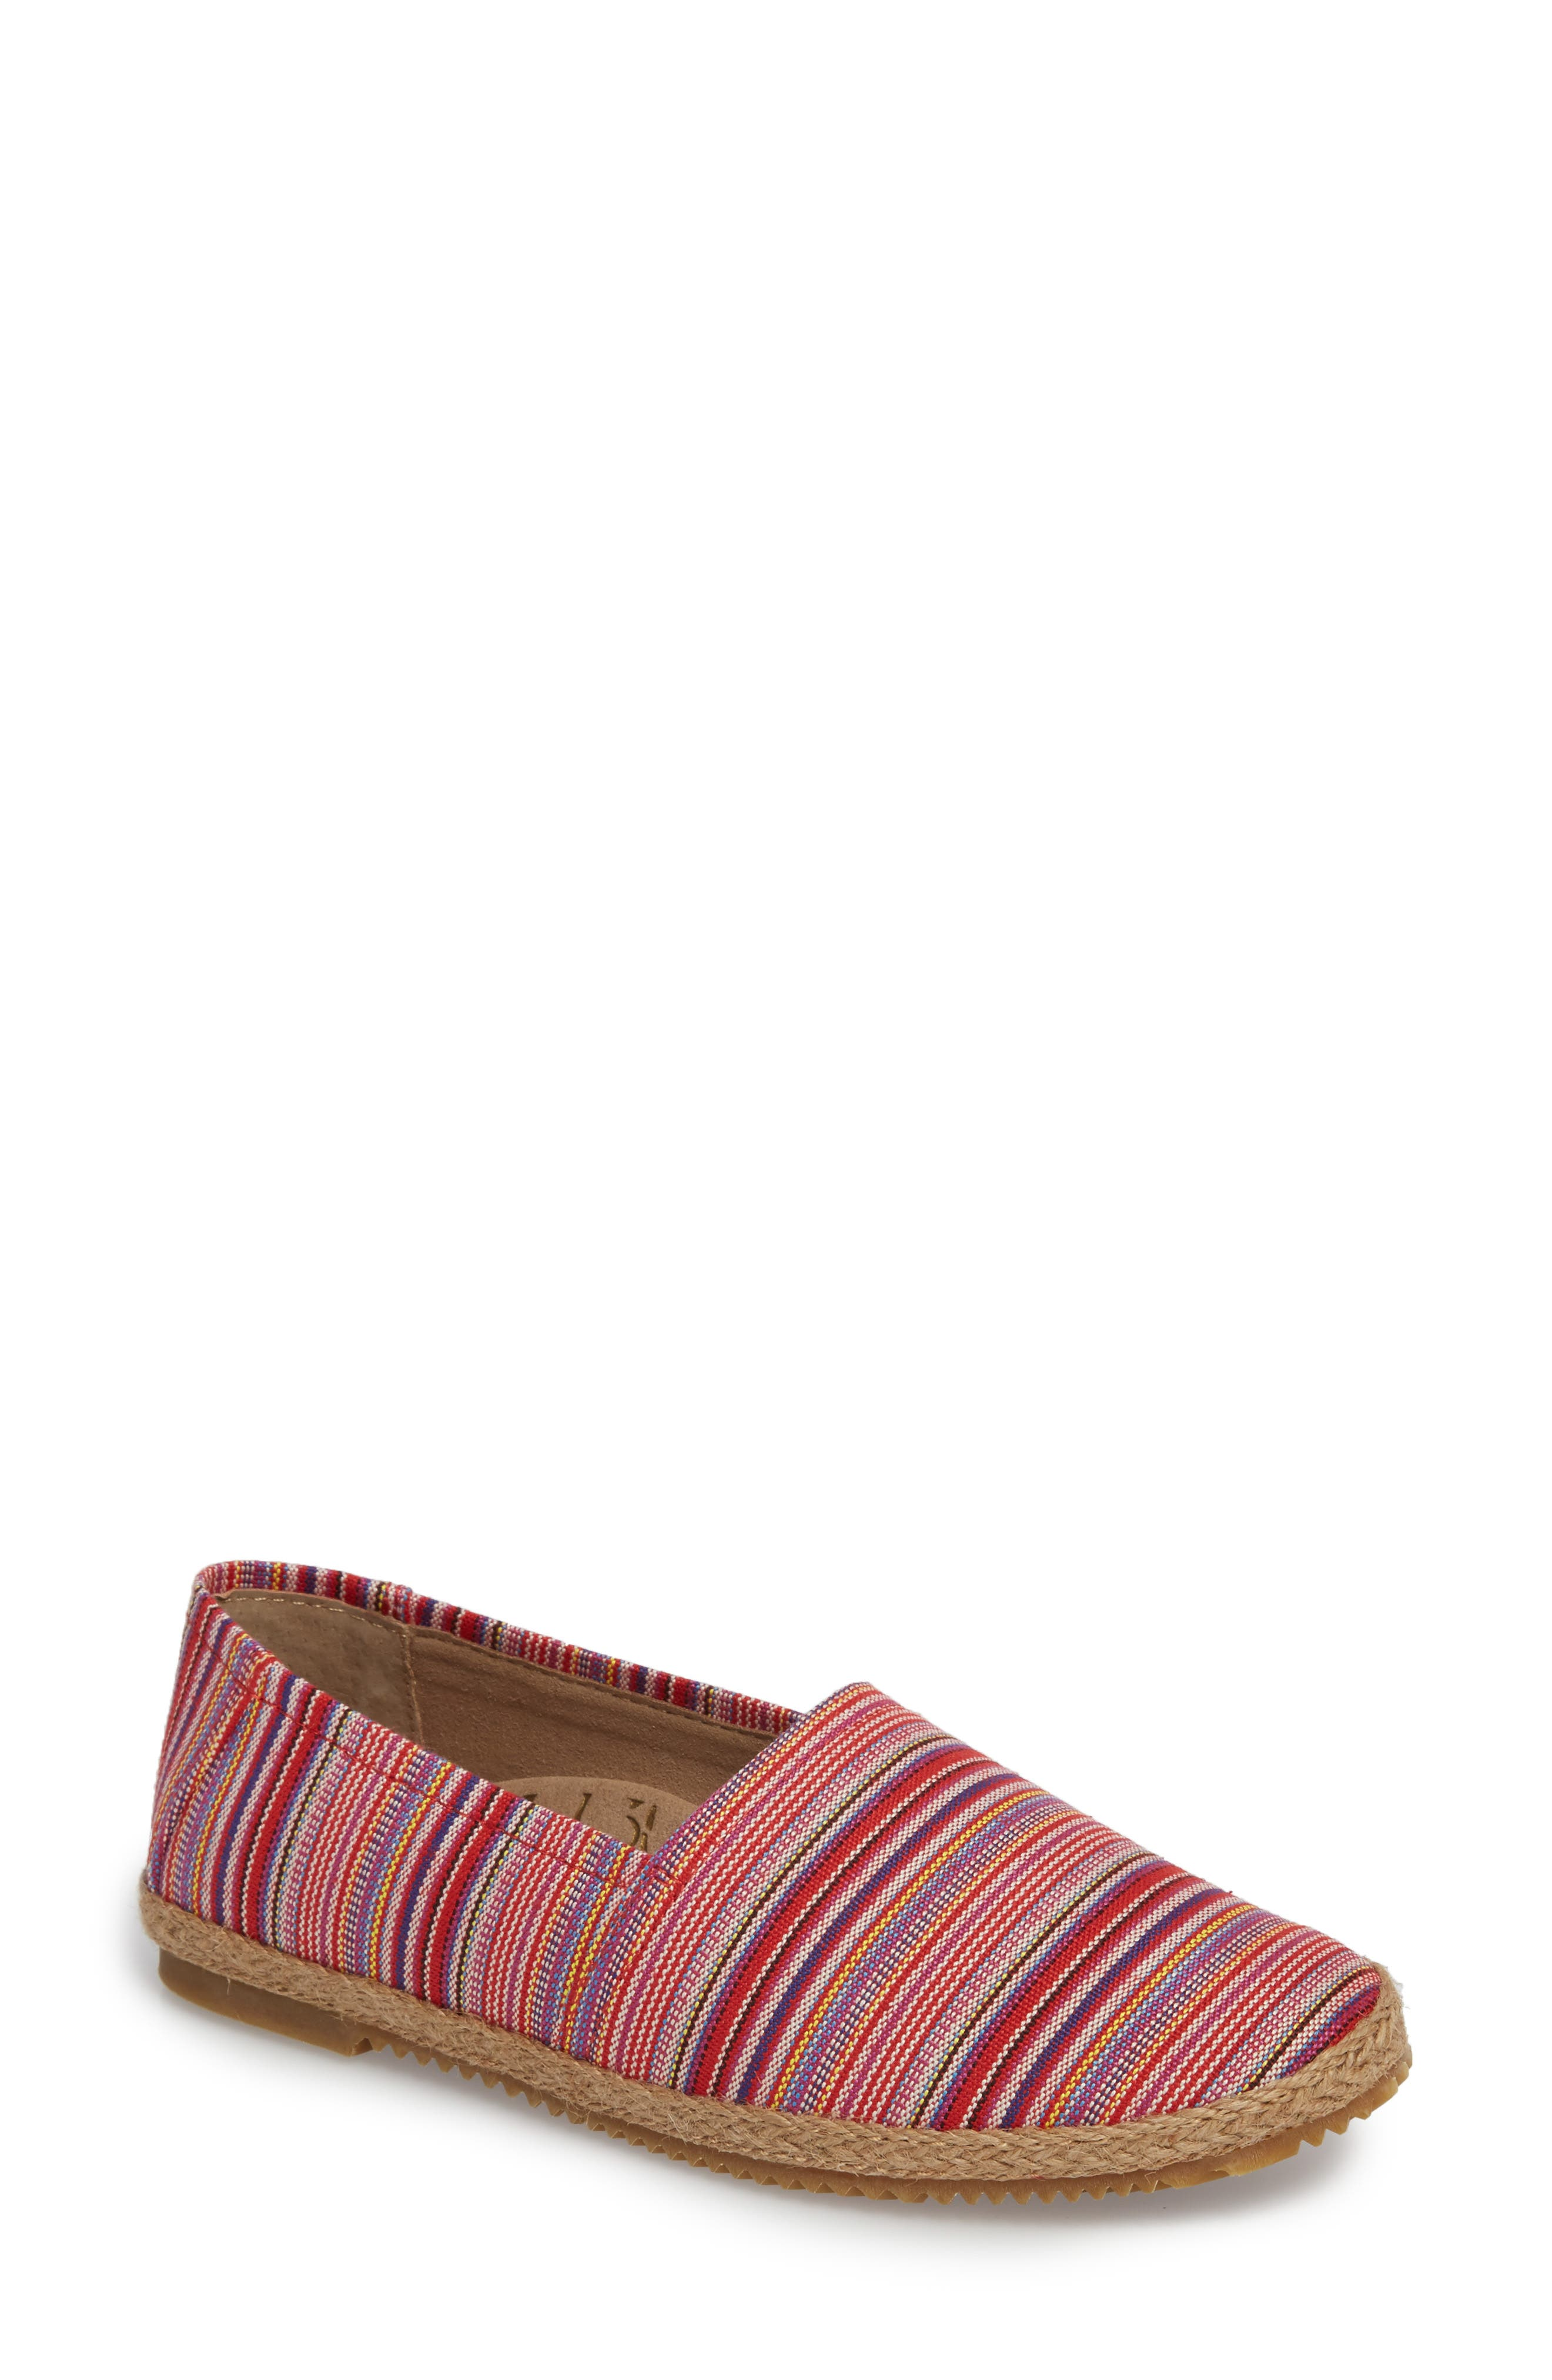 Kylie Slip-On,                             Main thumbnail 1, color,                             Pink Stripe Fabric